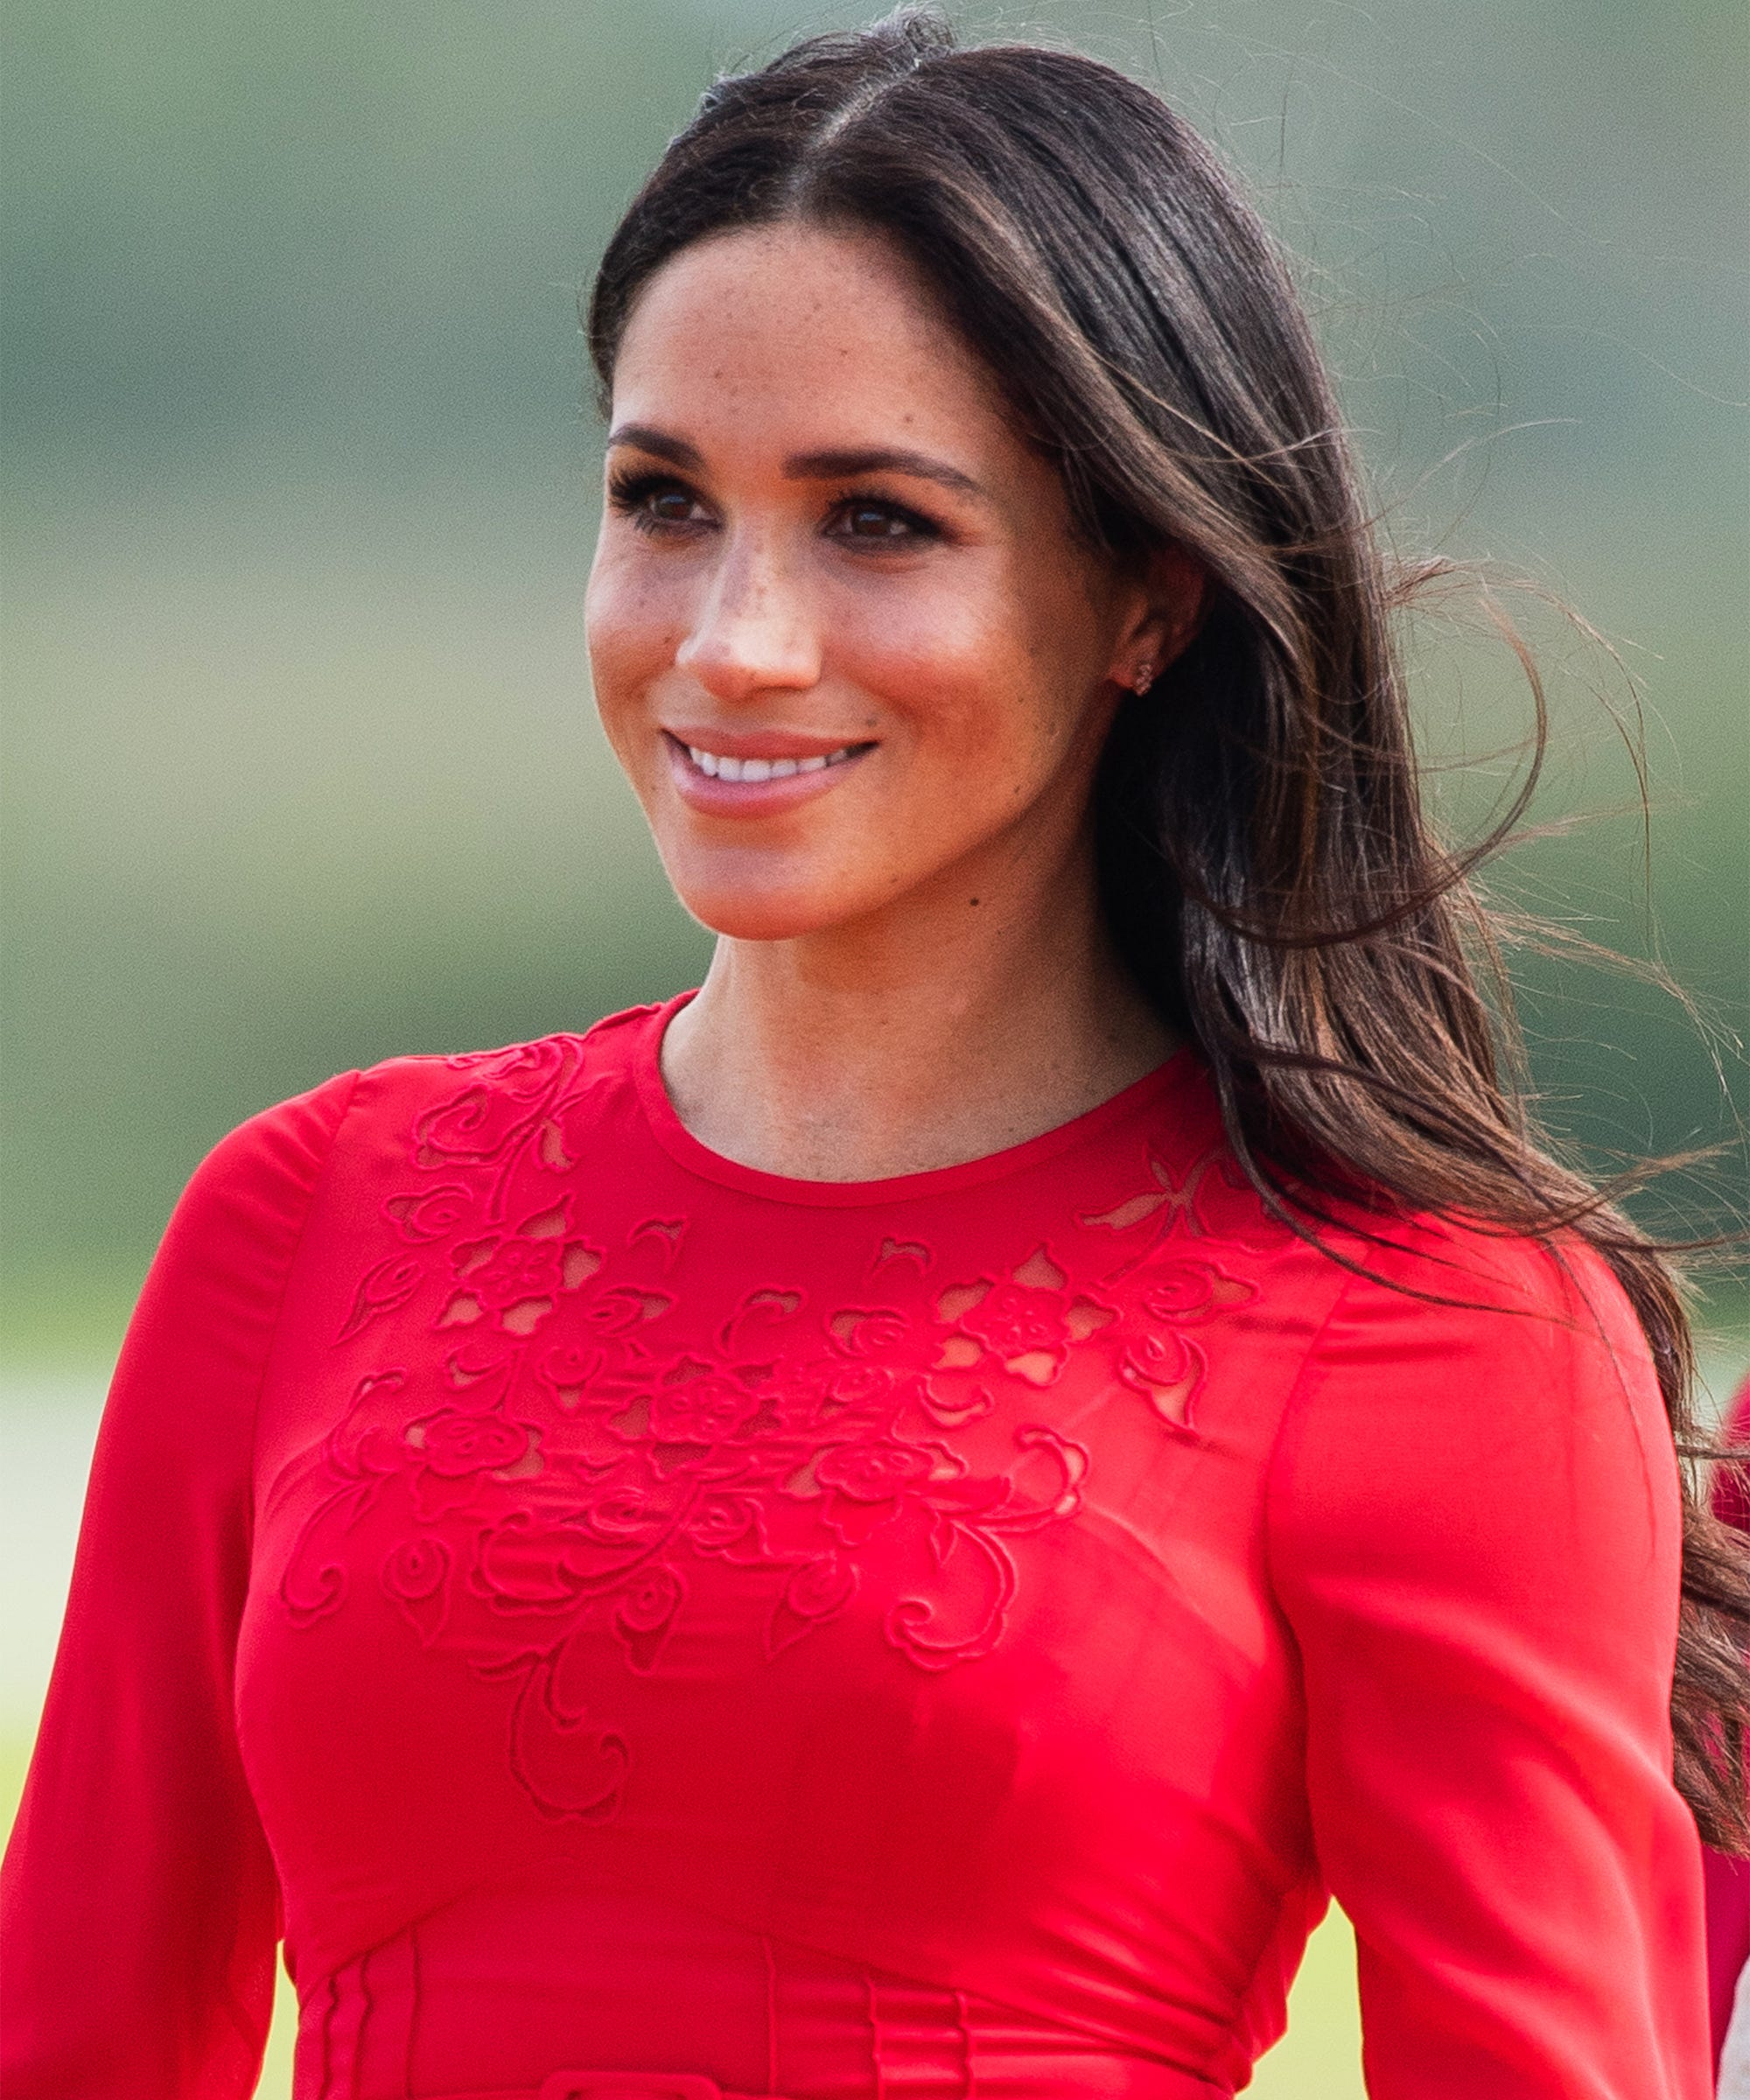 Meghan Markle Gave Birth In A Hospital After All